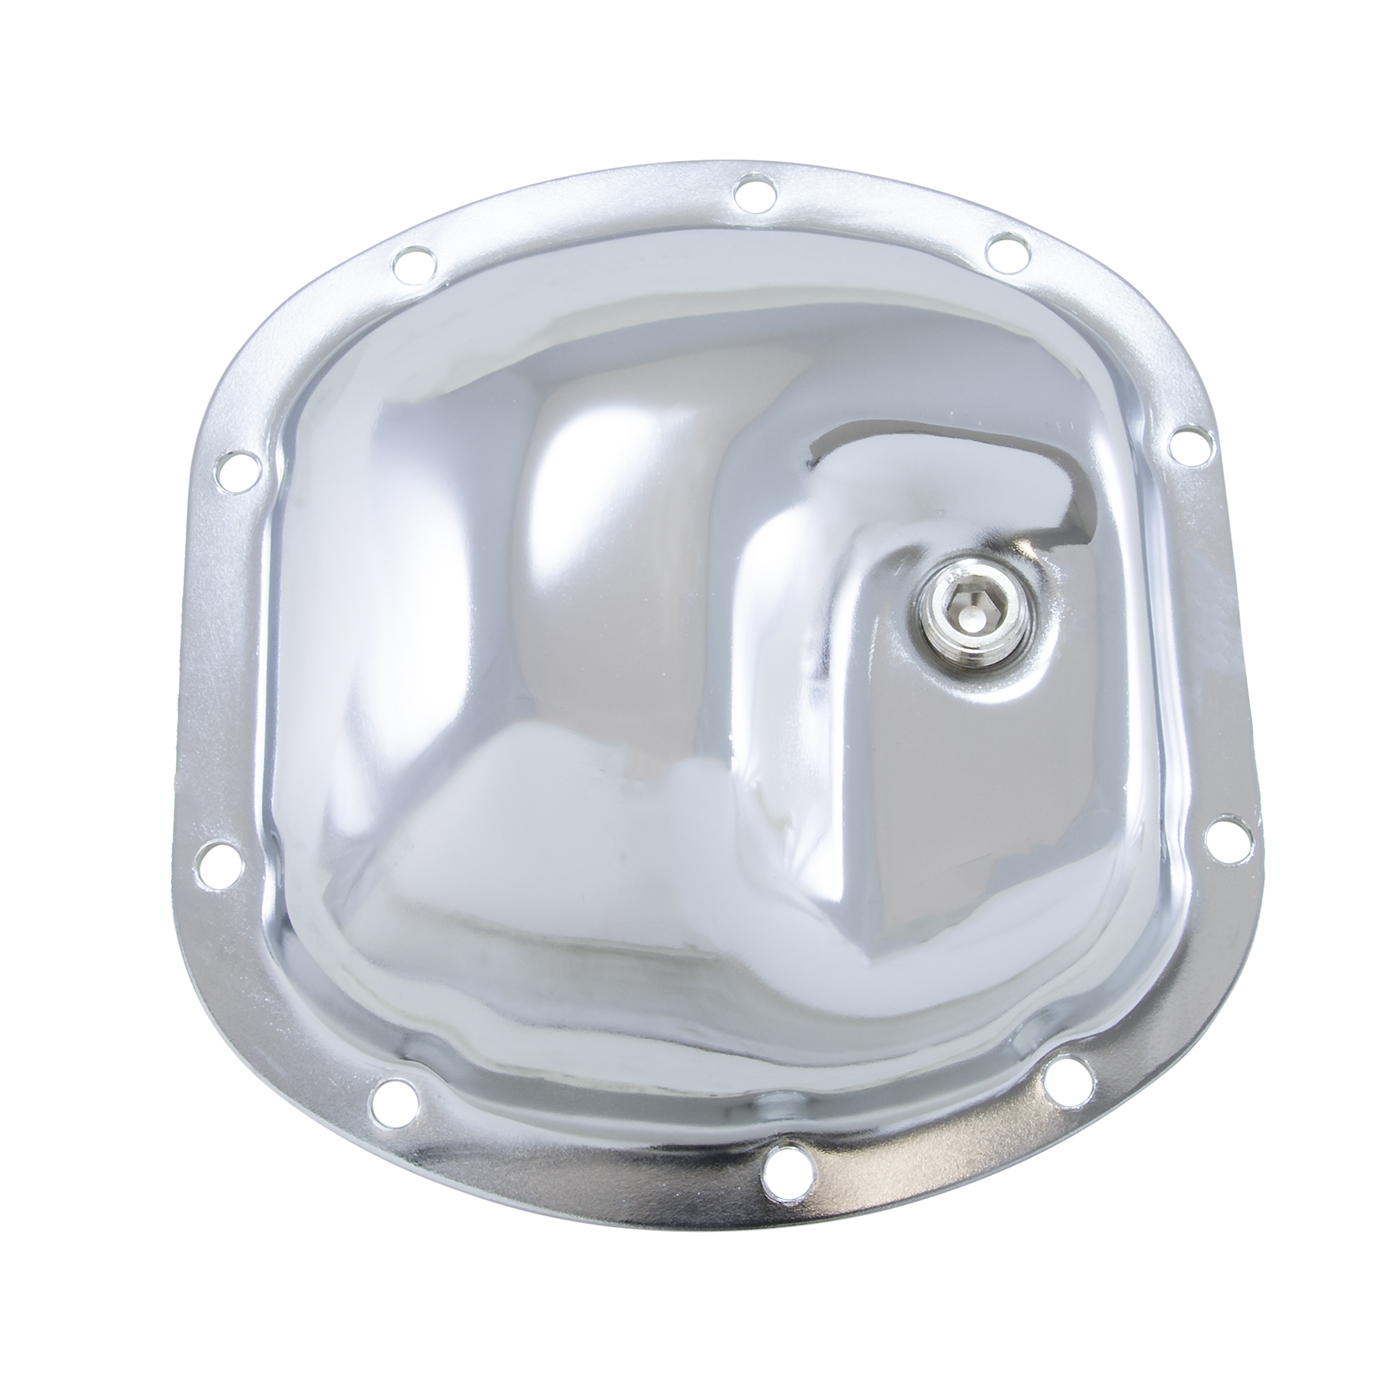 YP C1-D30-REV - Replacement Chrome Cover for Dana 30 Reverse rotation